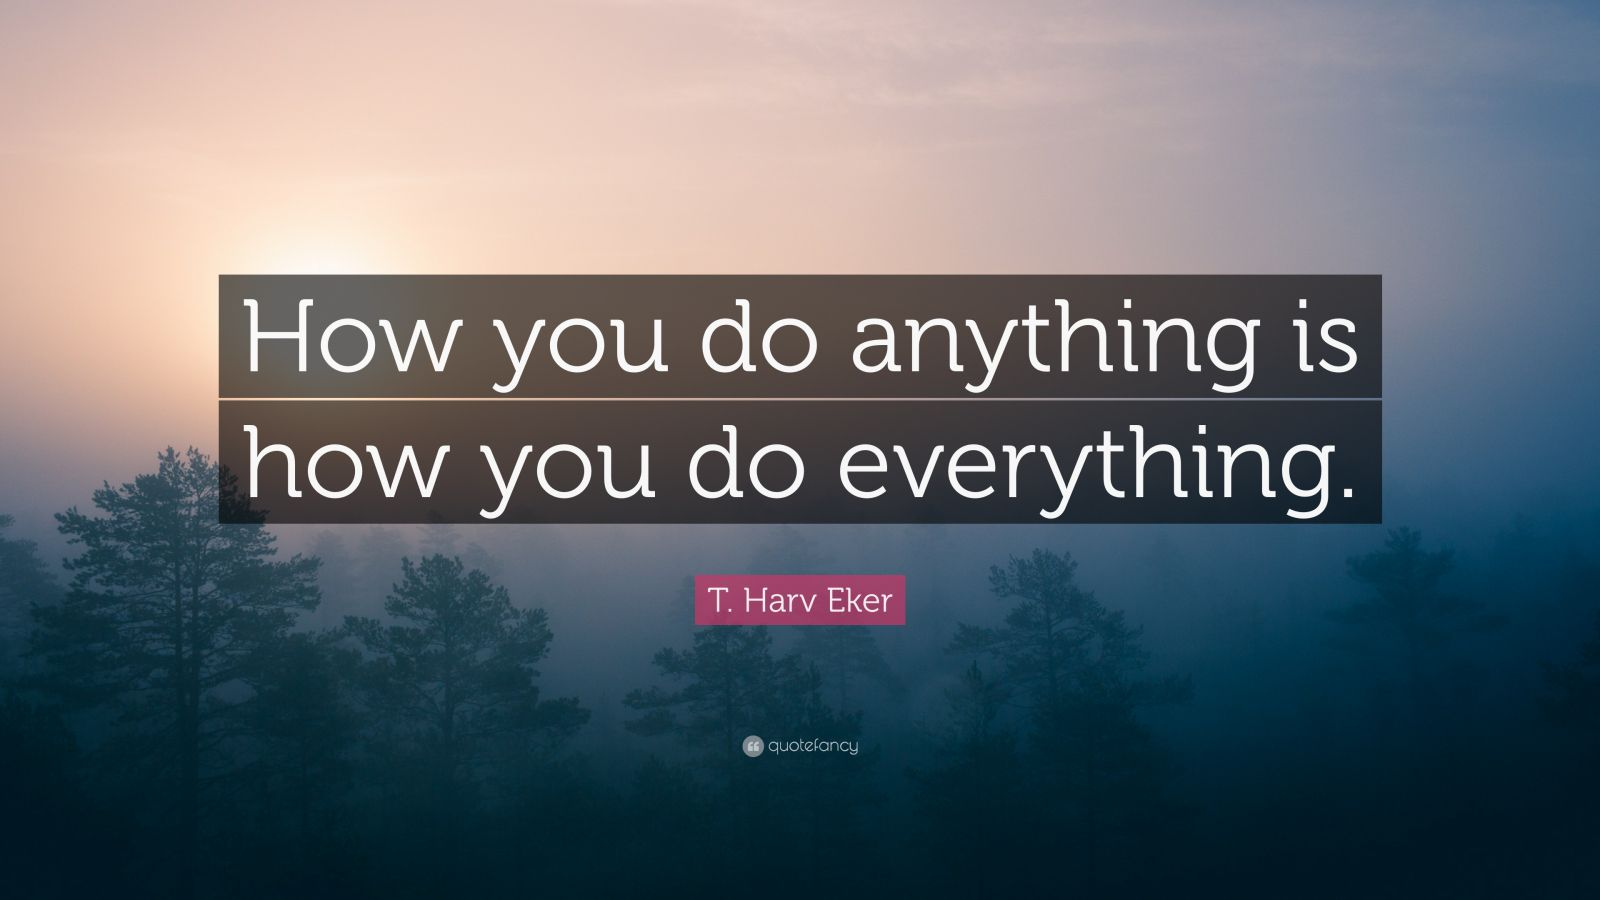 T harv eker quote how you do anything is how you do everything t harv eker quote how you do anything is how you do everything altavistaventures Image collections